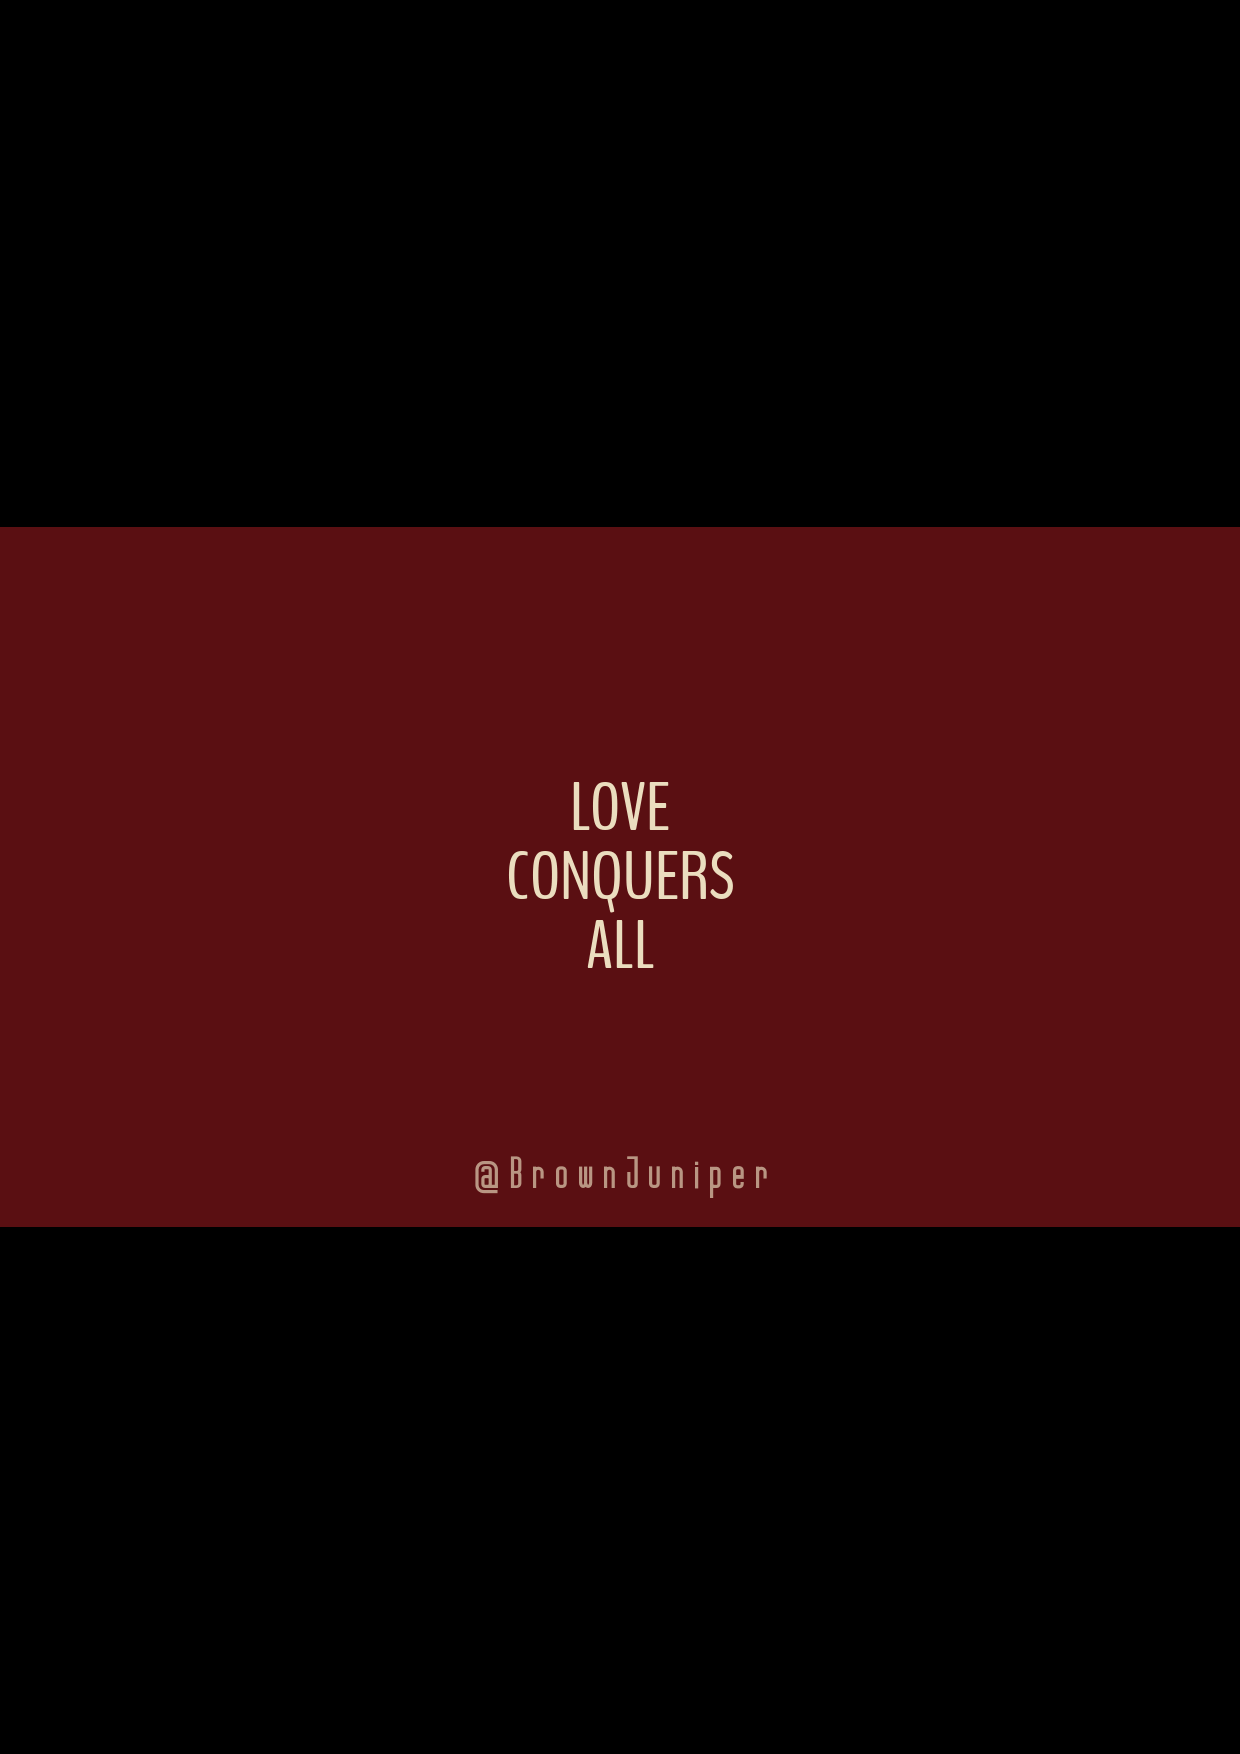 Red,                Text,                Font,                Line,                Computer,                Wallpaper,                Brand,                Graphics,                Rectangle,                Quote,                Wording,                Saying,                Black,                 Free Image